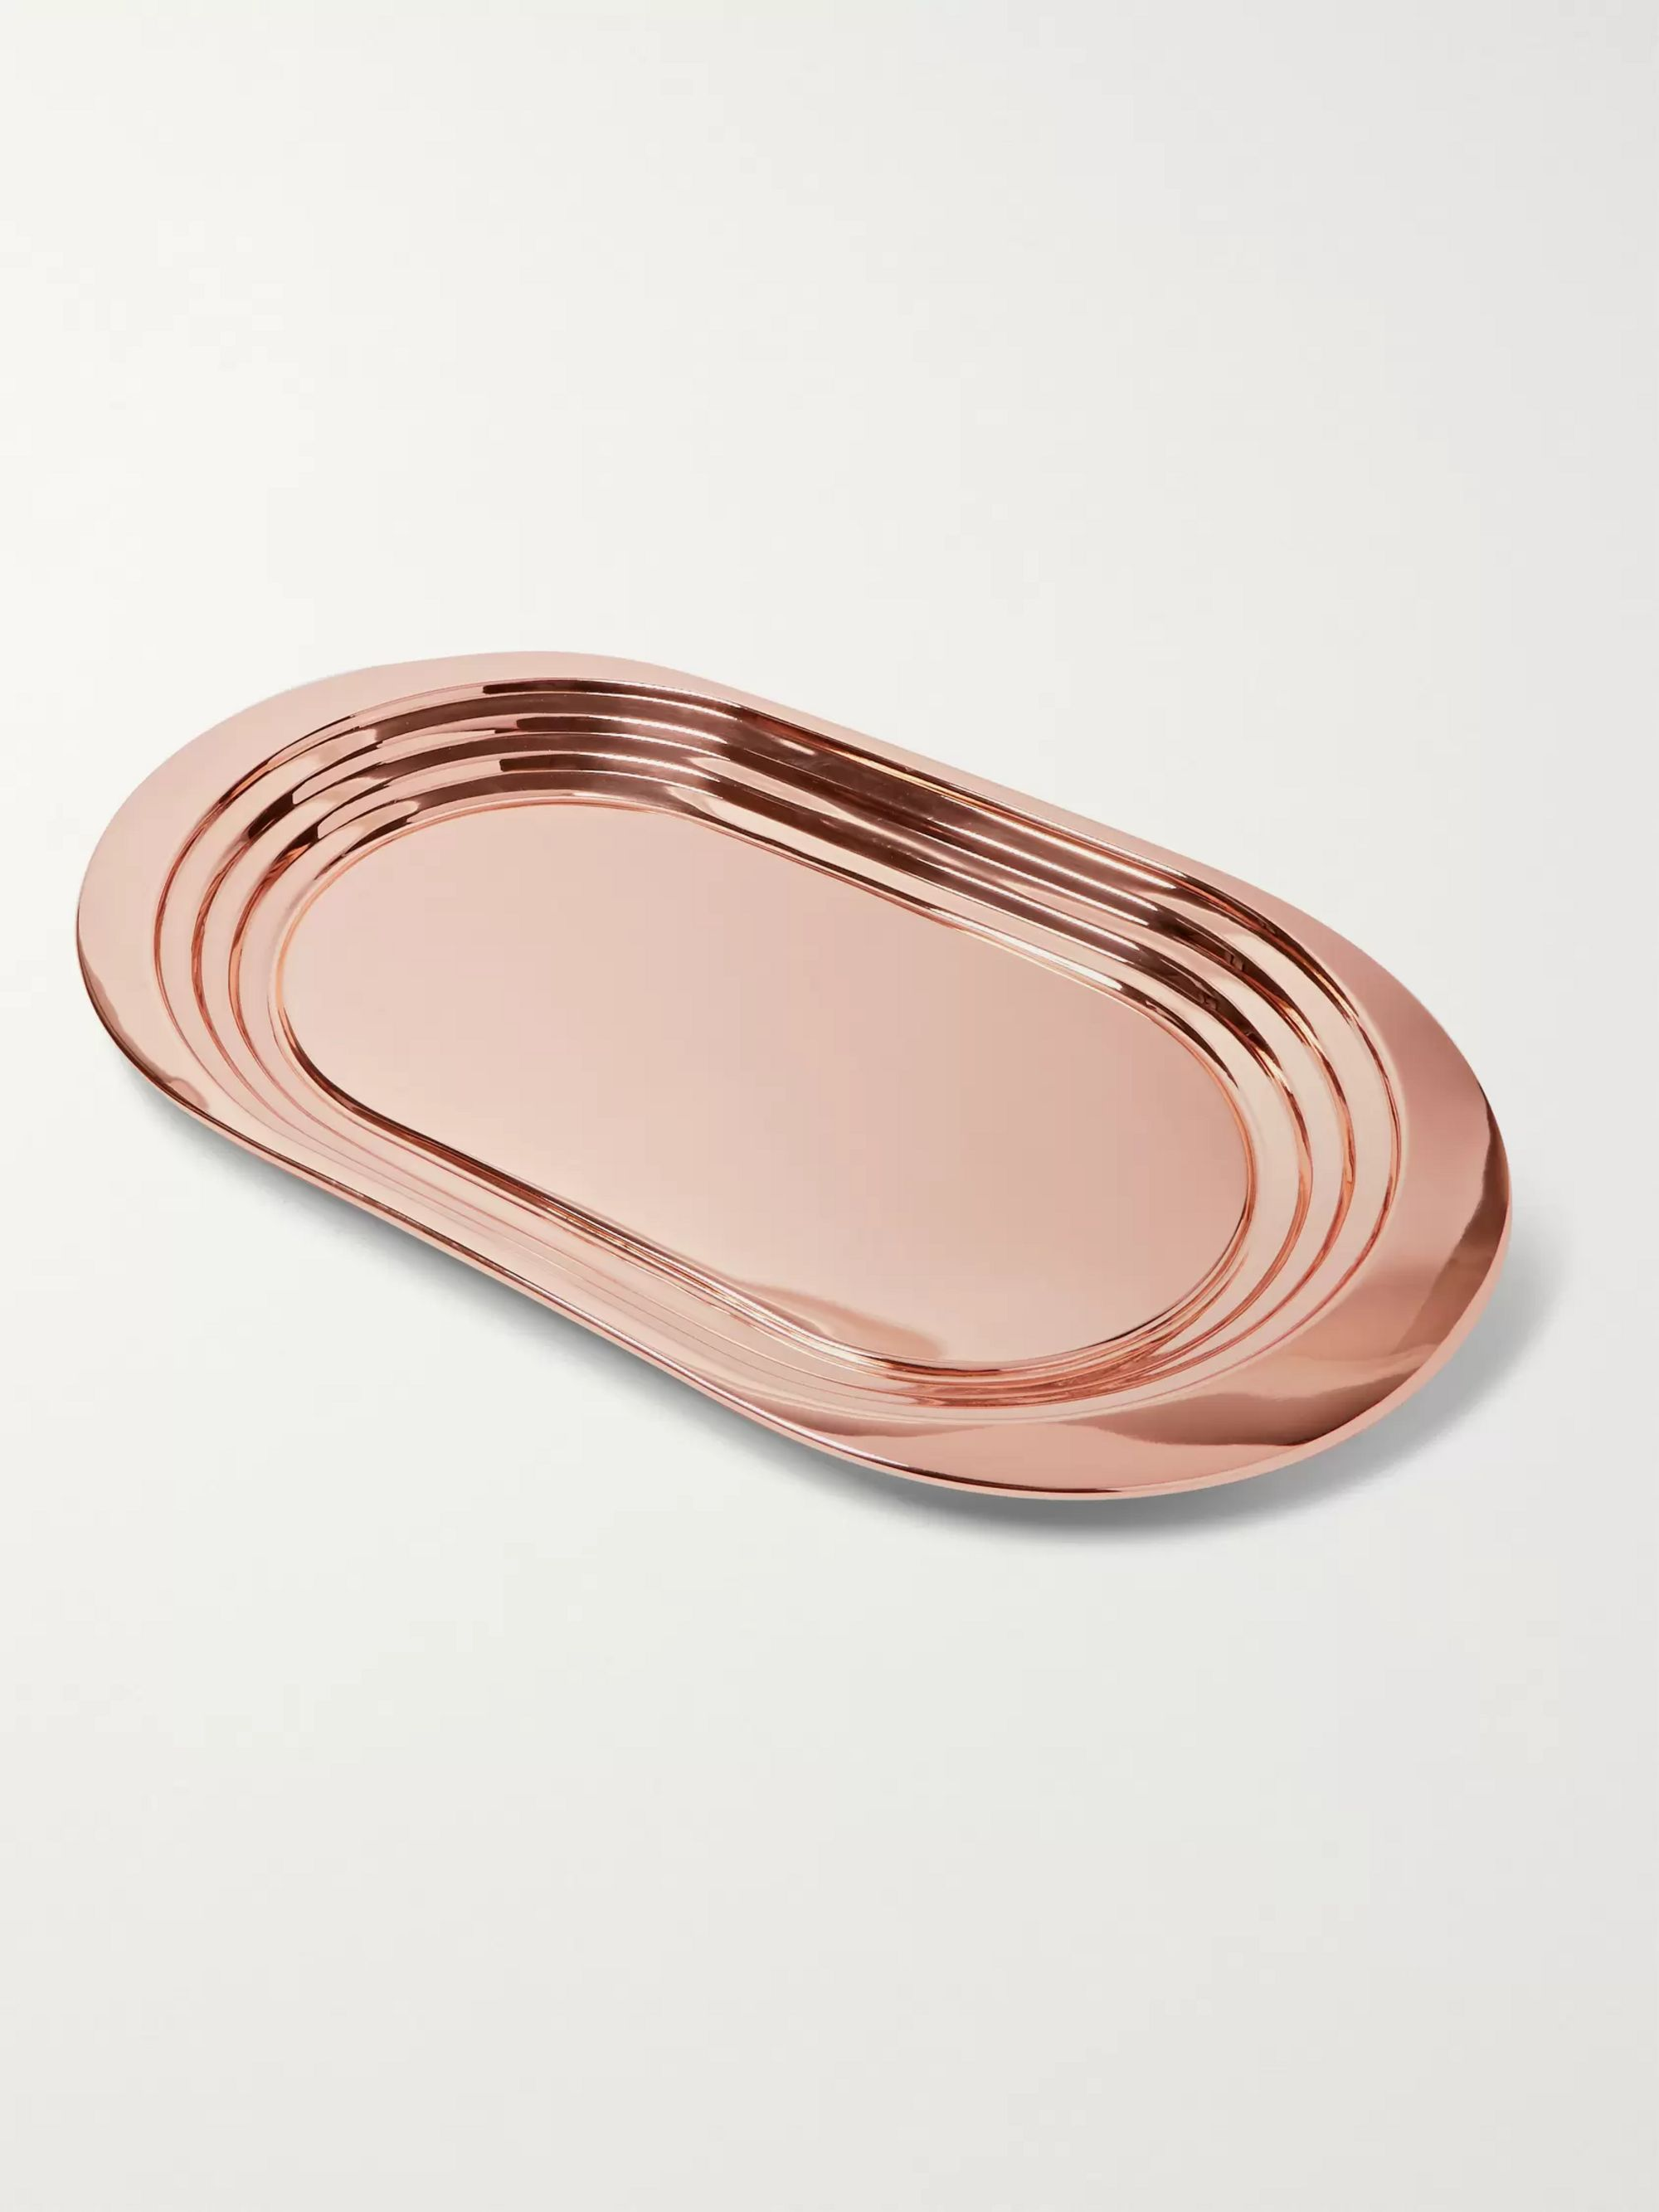 Tom Dixon Plum Copper-Plated Tray